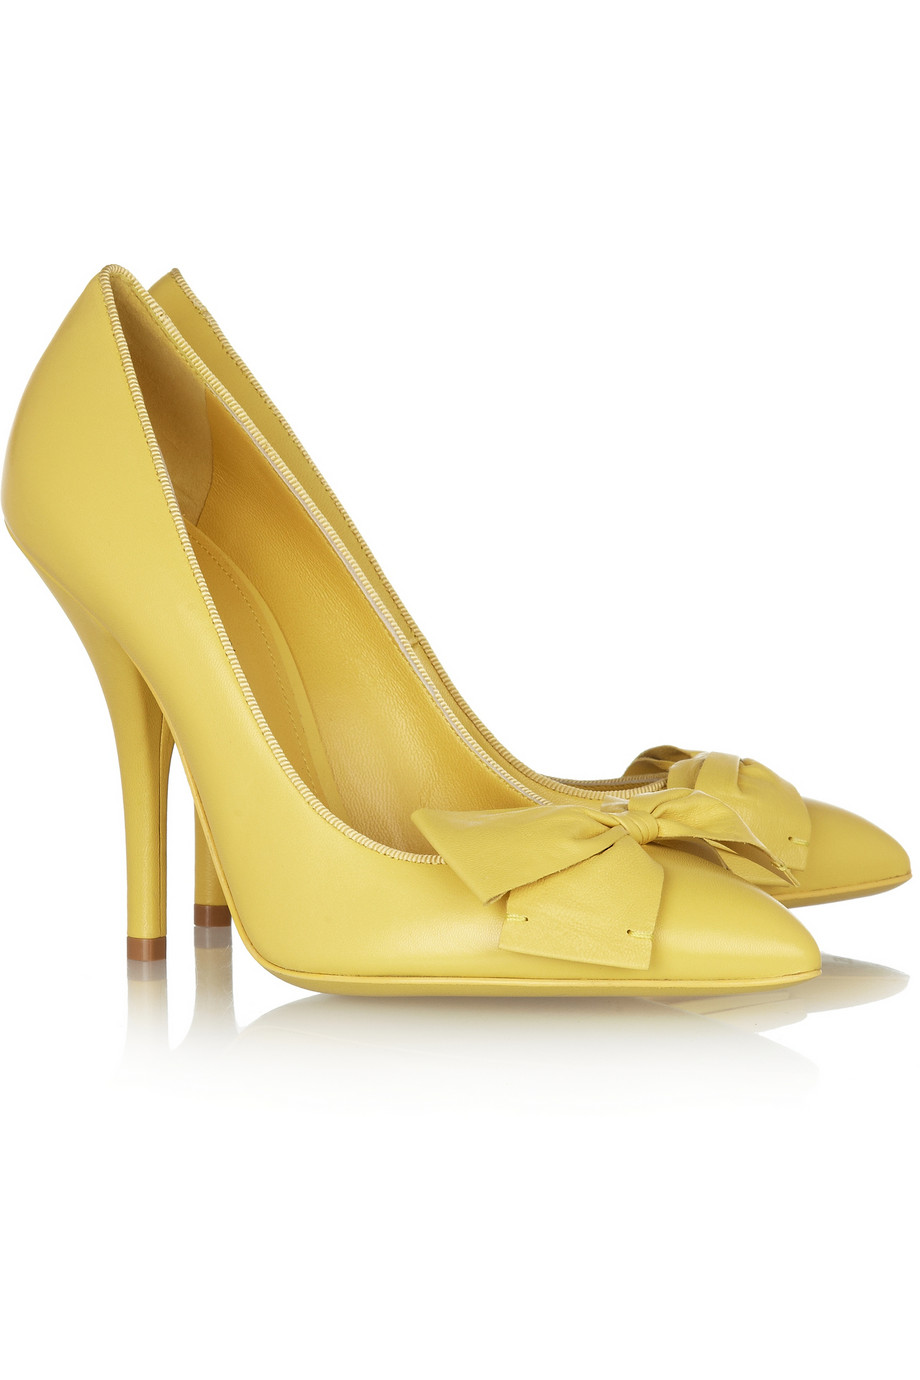 Bottega veneta Bow-embellished Leather Pumps in Yellow | Lyst